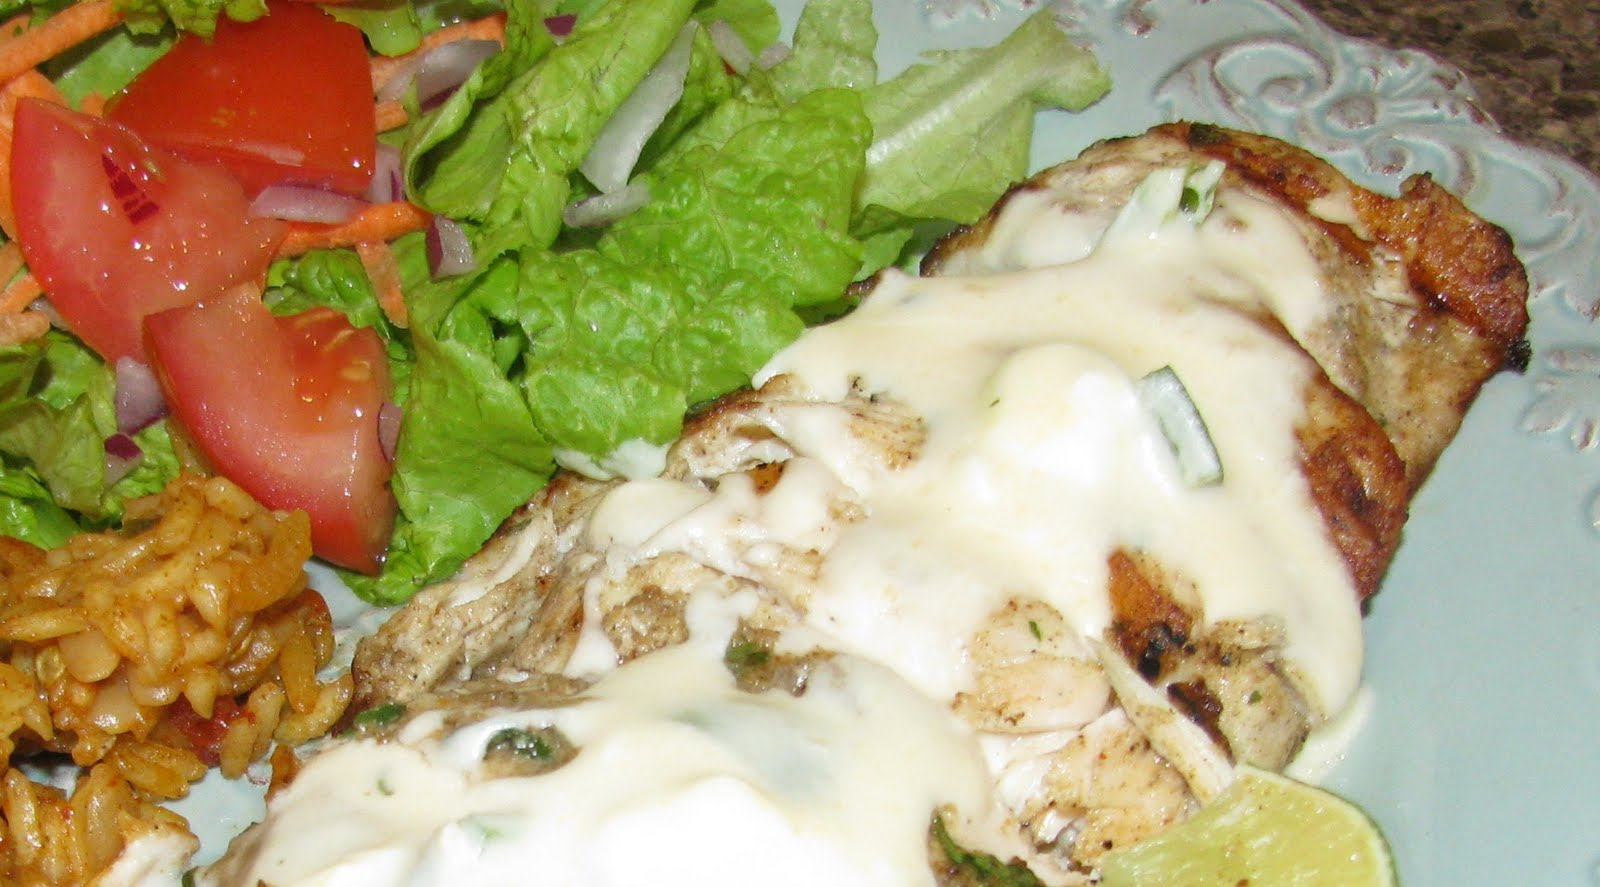 4daysgourmet: Tequila Grilled Chicken with Jalapeno Cream Sauce